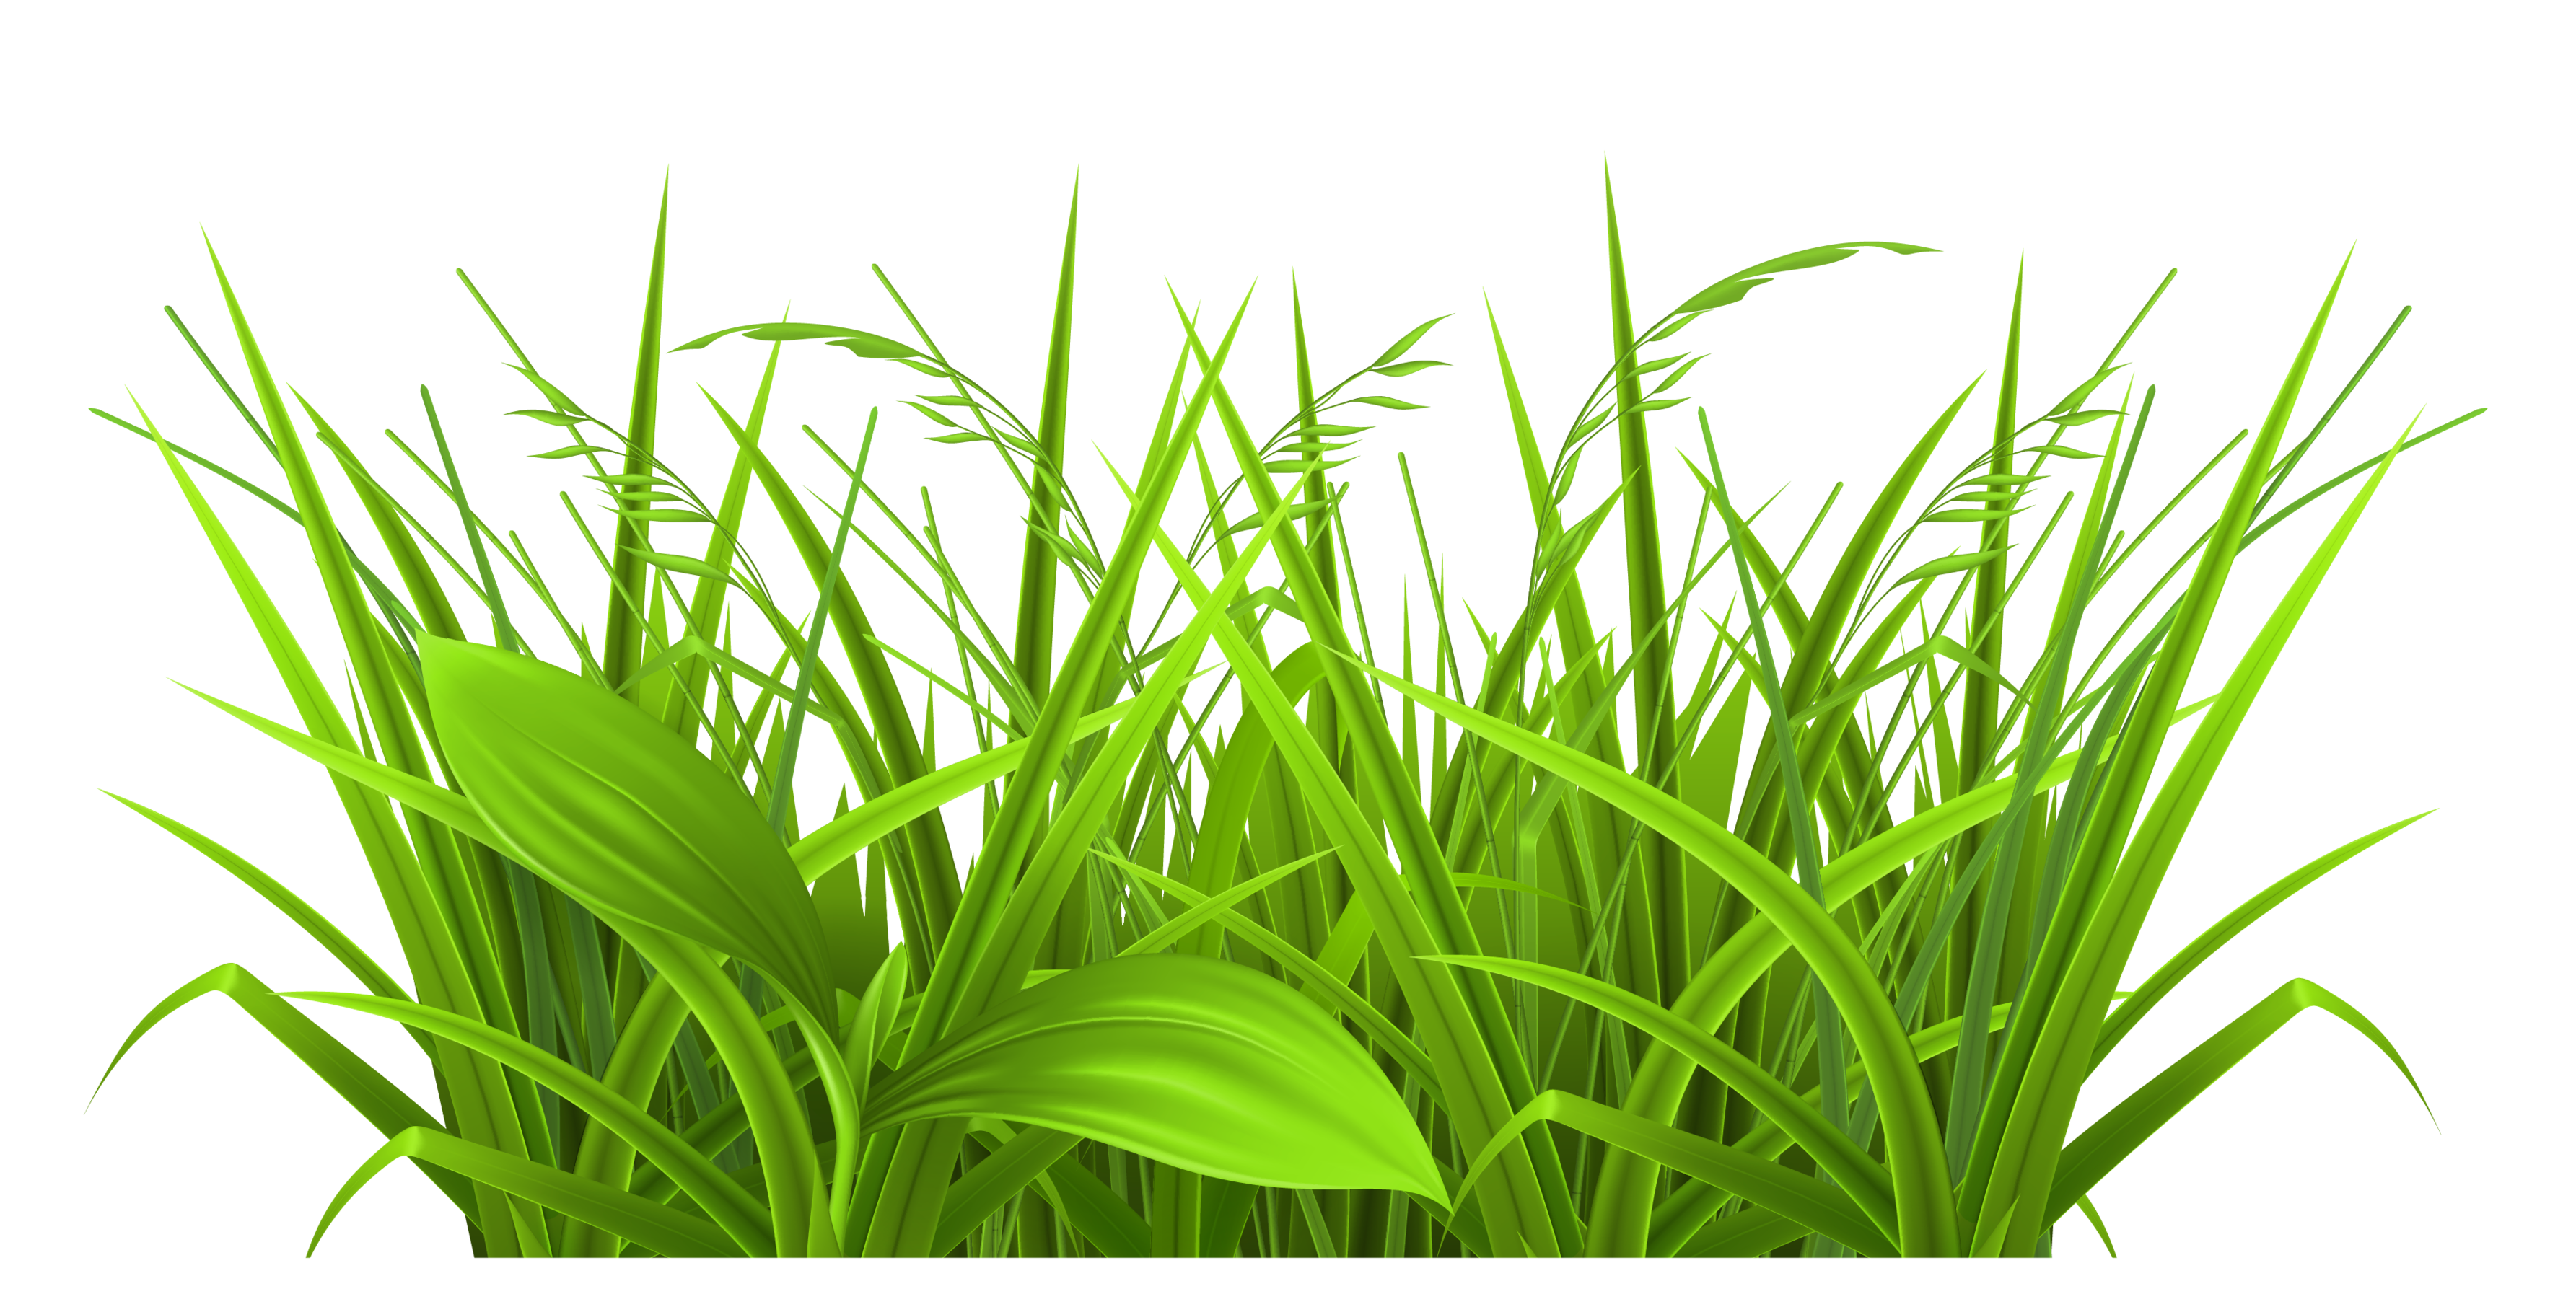 Ai vector grass. Silhouette free at getdrawings